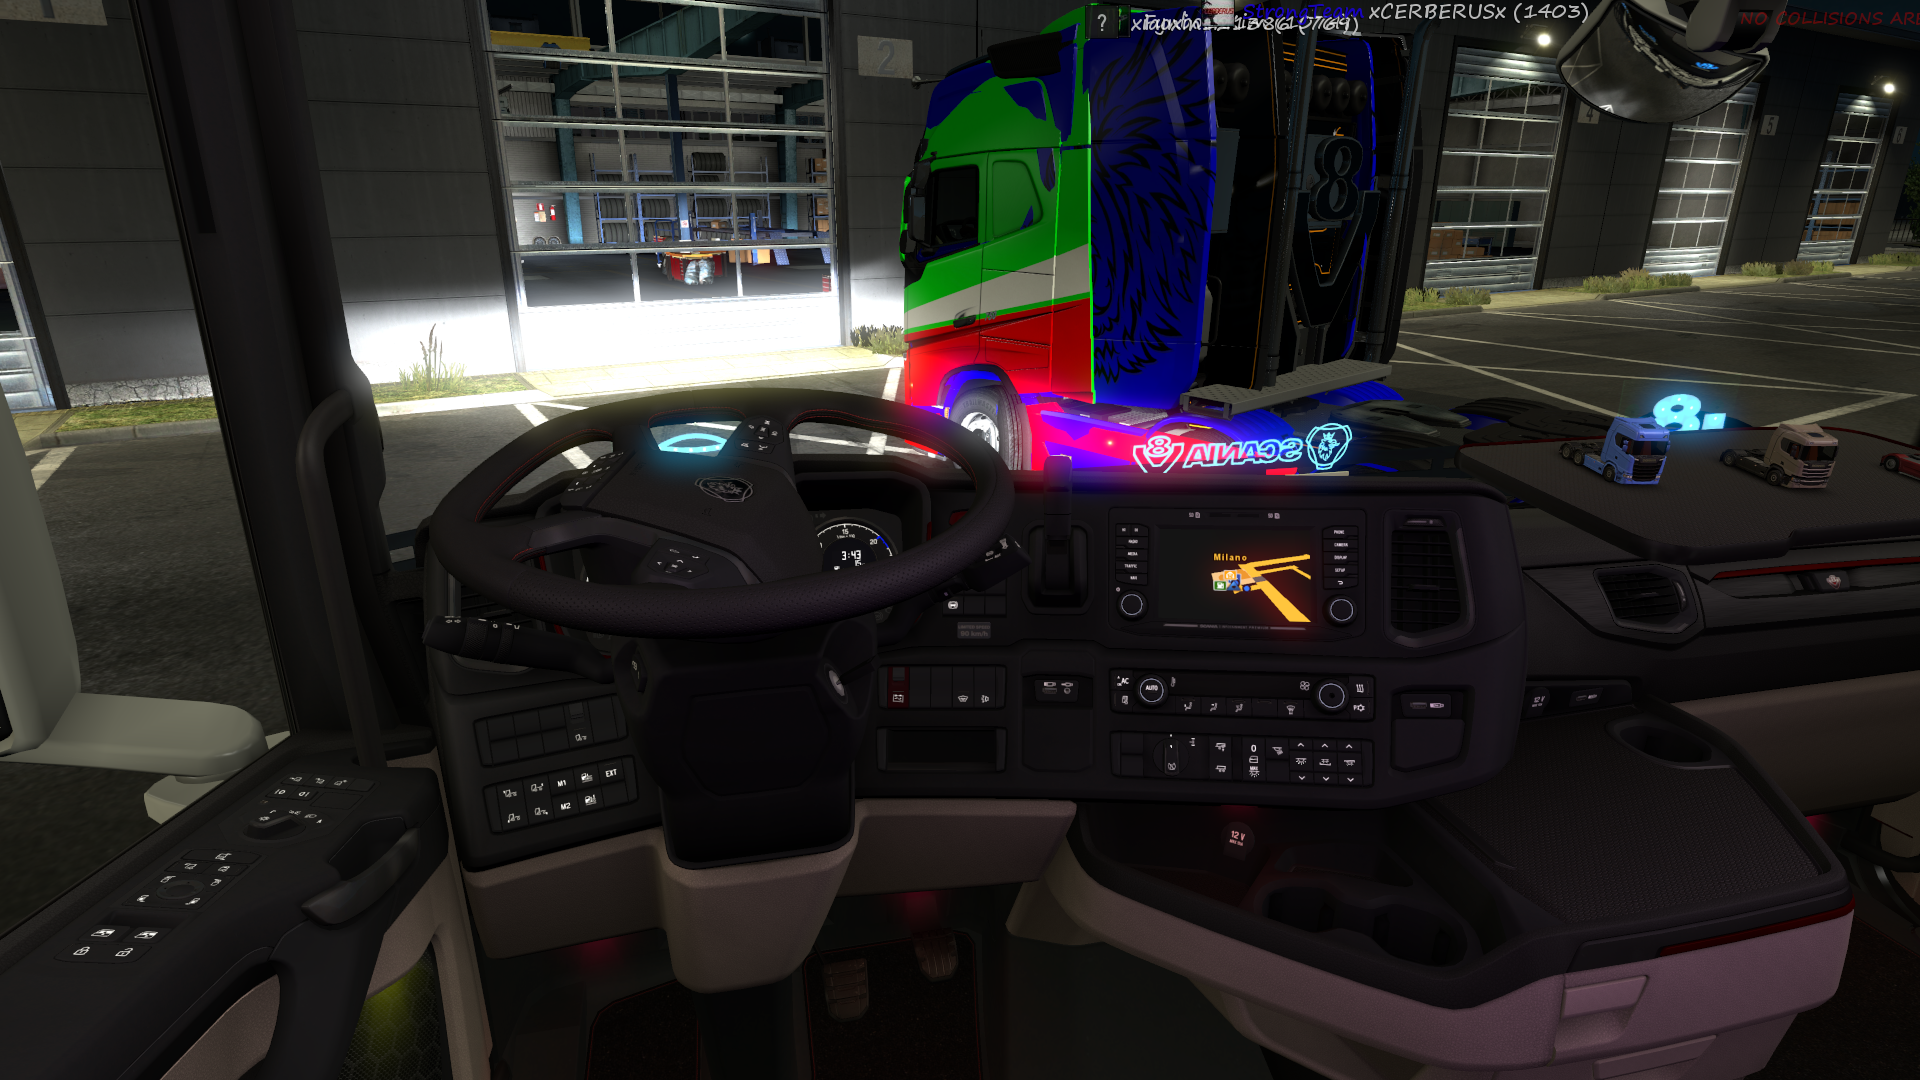 ets2_20180520_145333_00.png